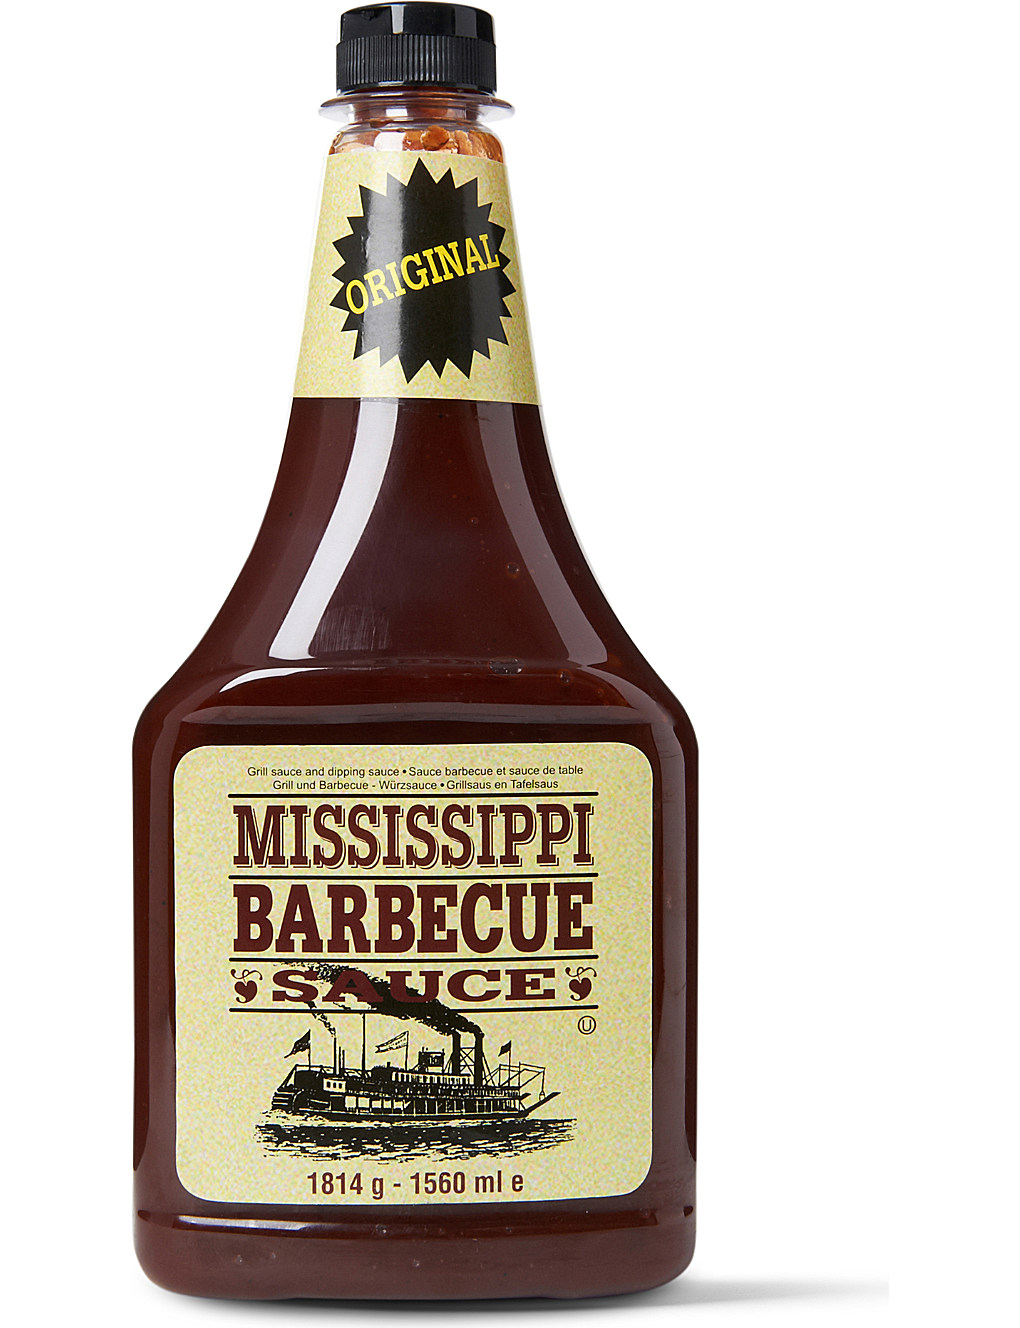 Mississippi Barbecue Sauce Original 1814g